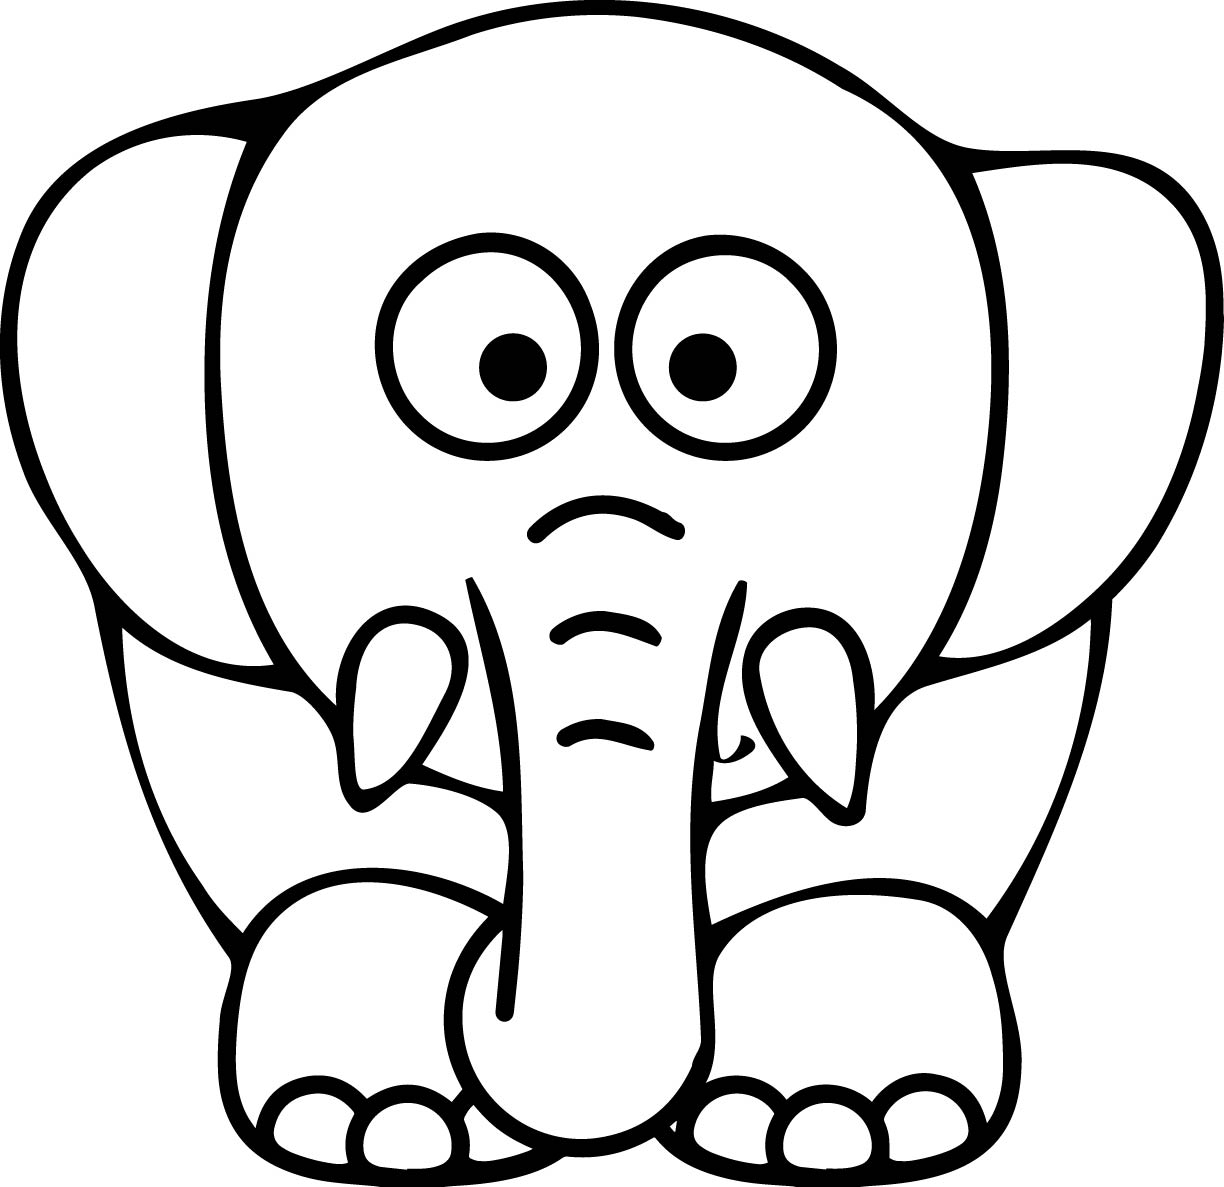 printable elephant coloring pages elephant coloring pages printable free printable kids printable elephant coloring pages